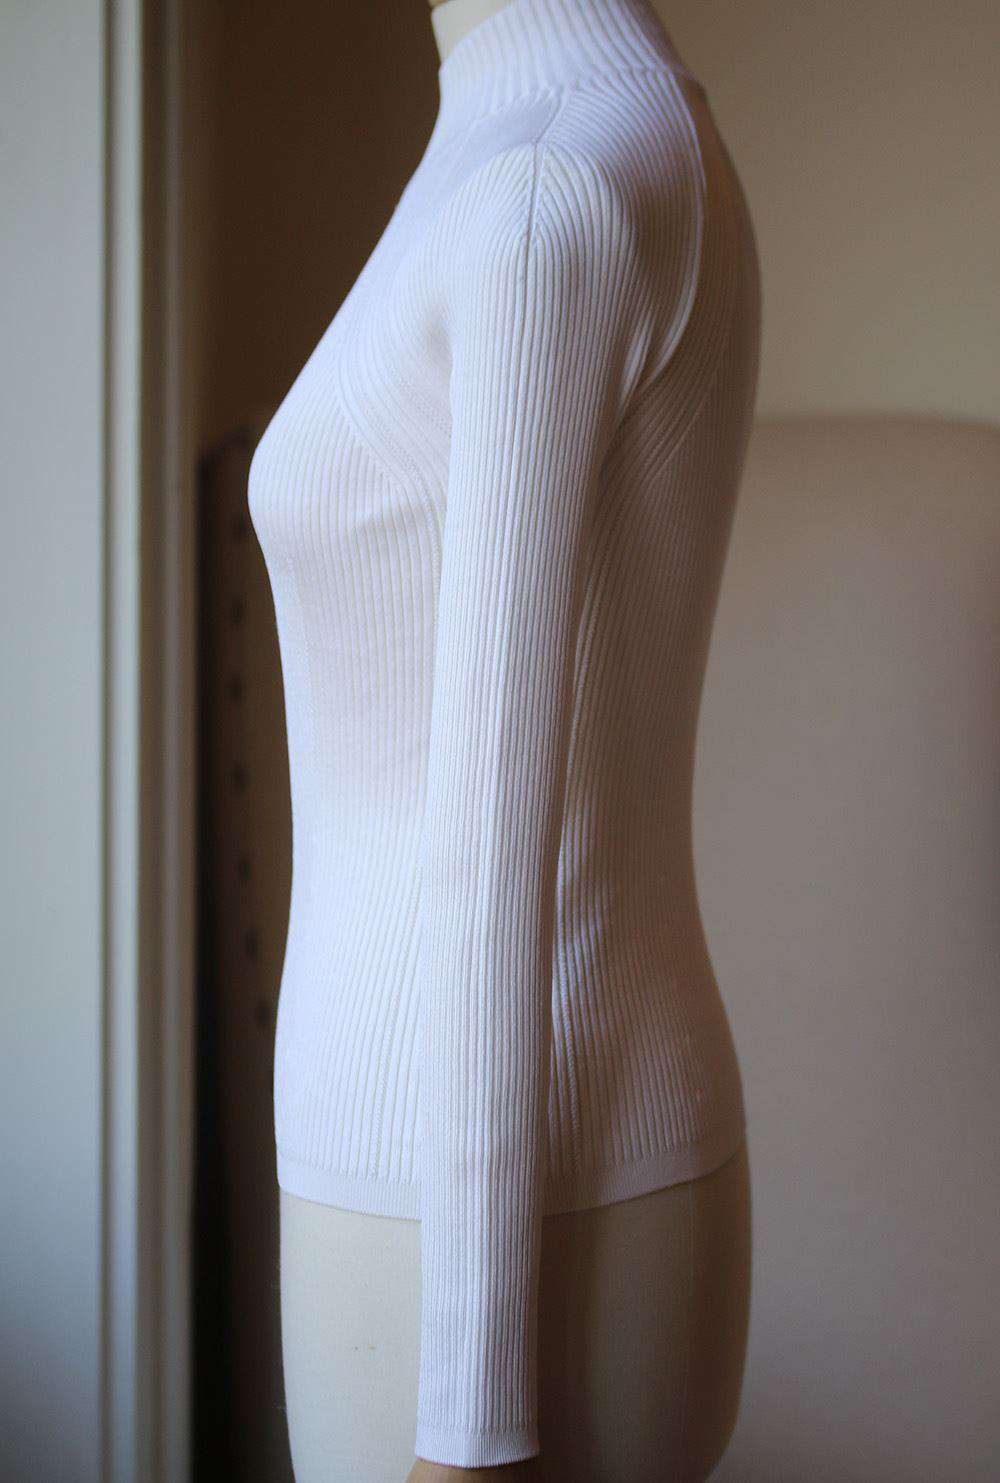 TOM FORD RIBBED TURTLENECK TOP SMALL